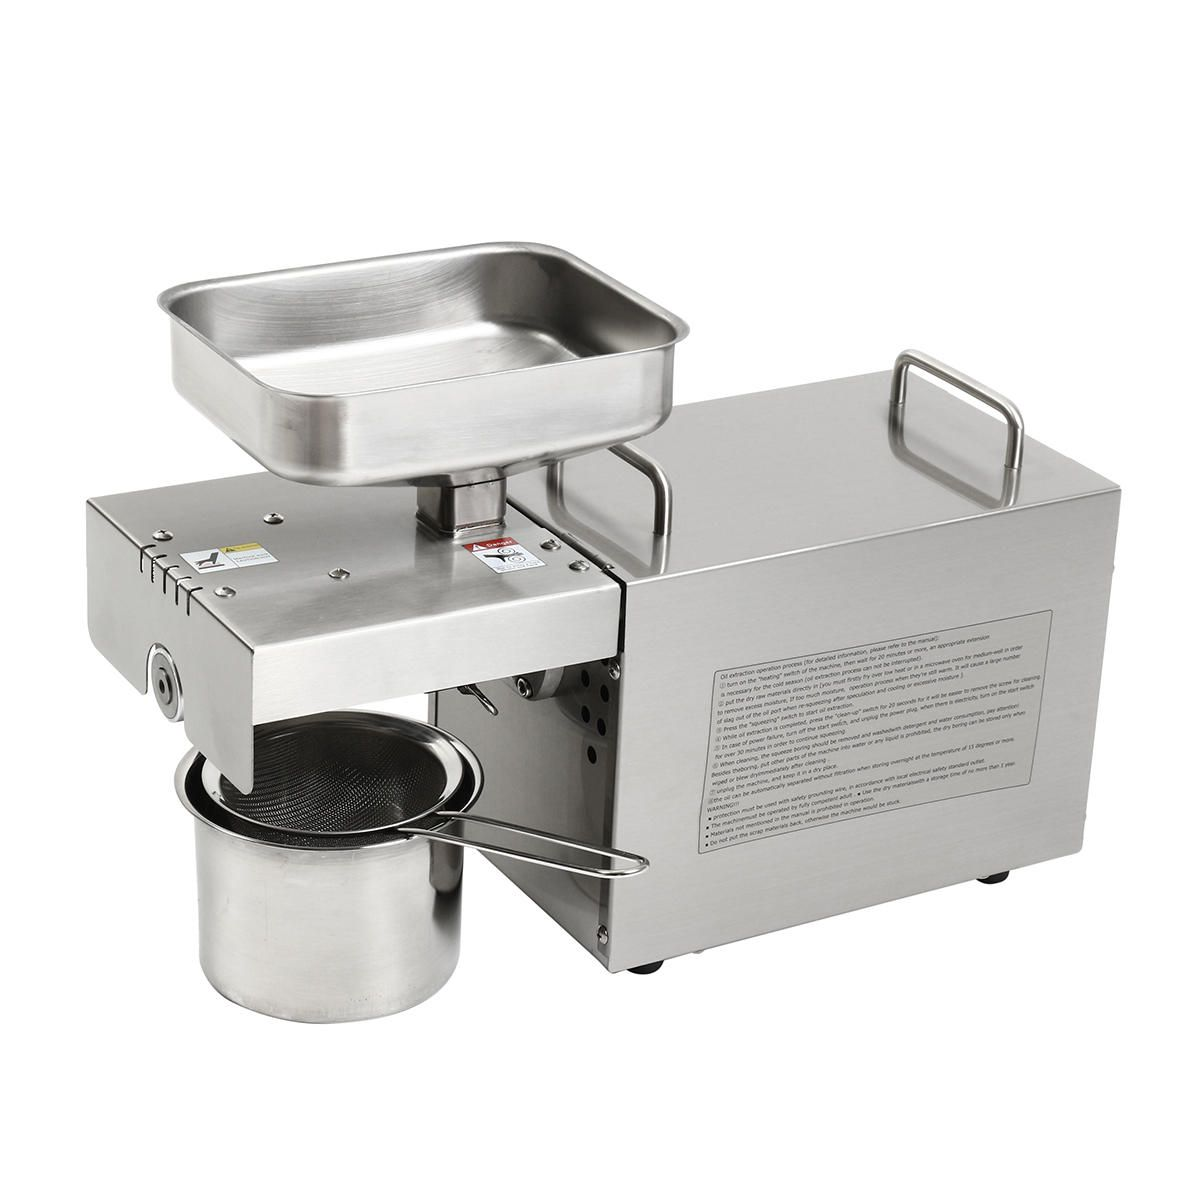 CDM US$457.21 220V Automatic Small Oil Press Machine Stainless Steel Cold Hot-press Machine